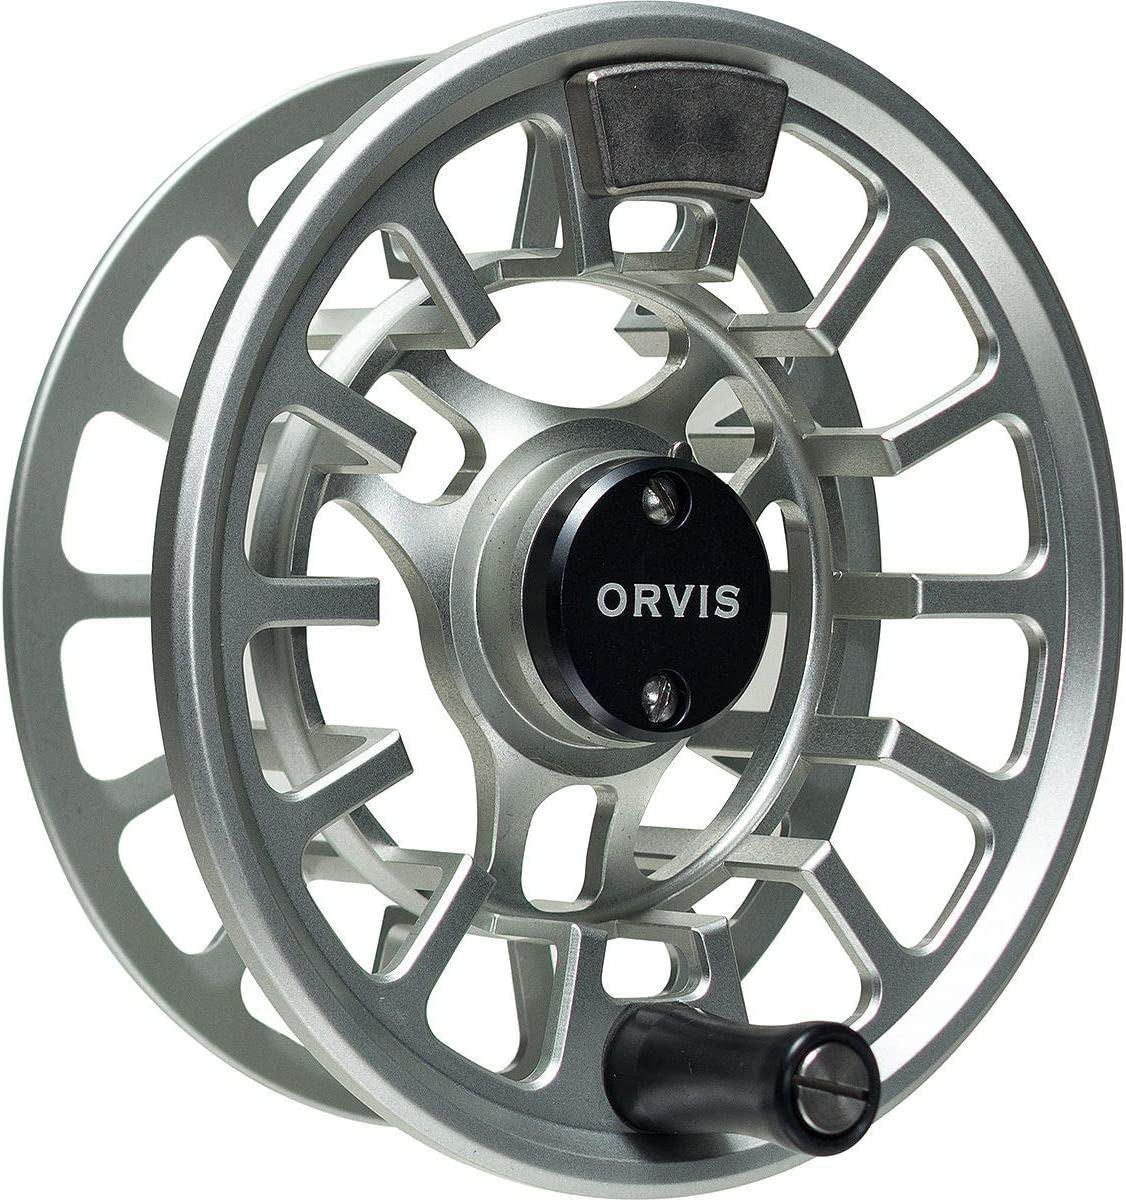 7-8 Weight Orvis Hydros Spool Silver IV